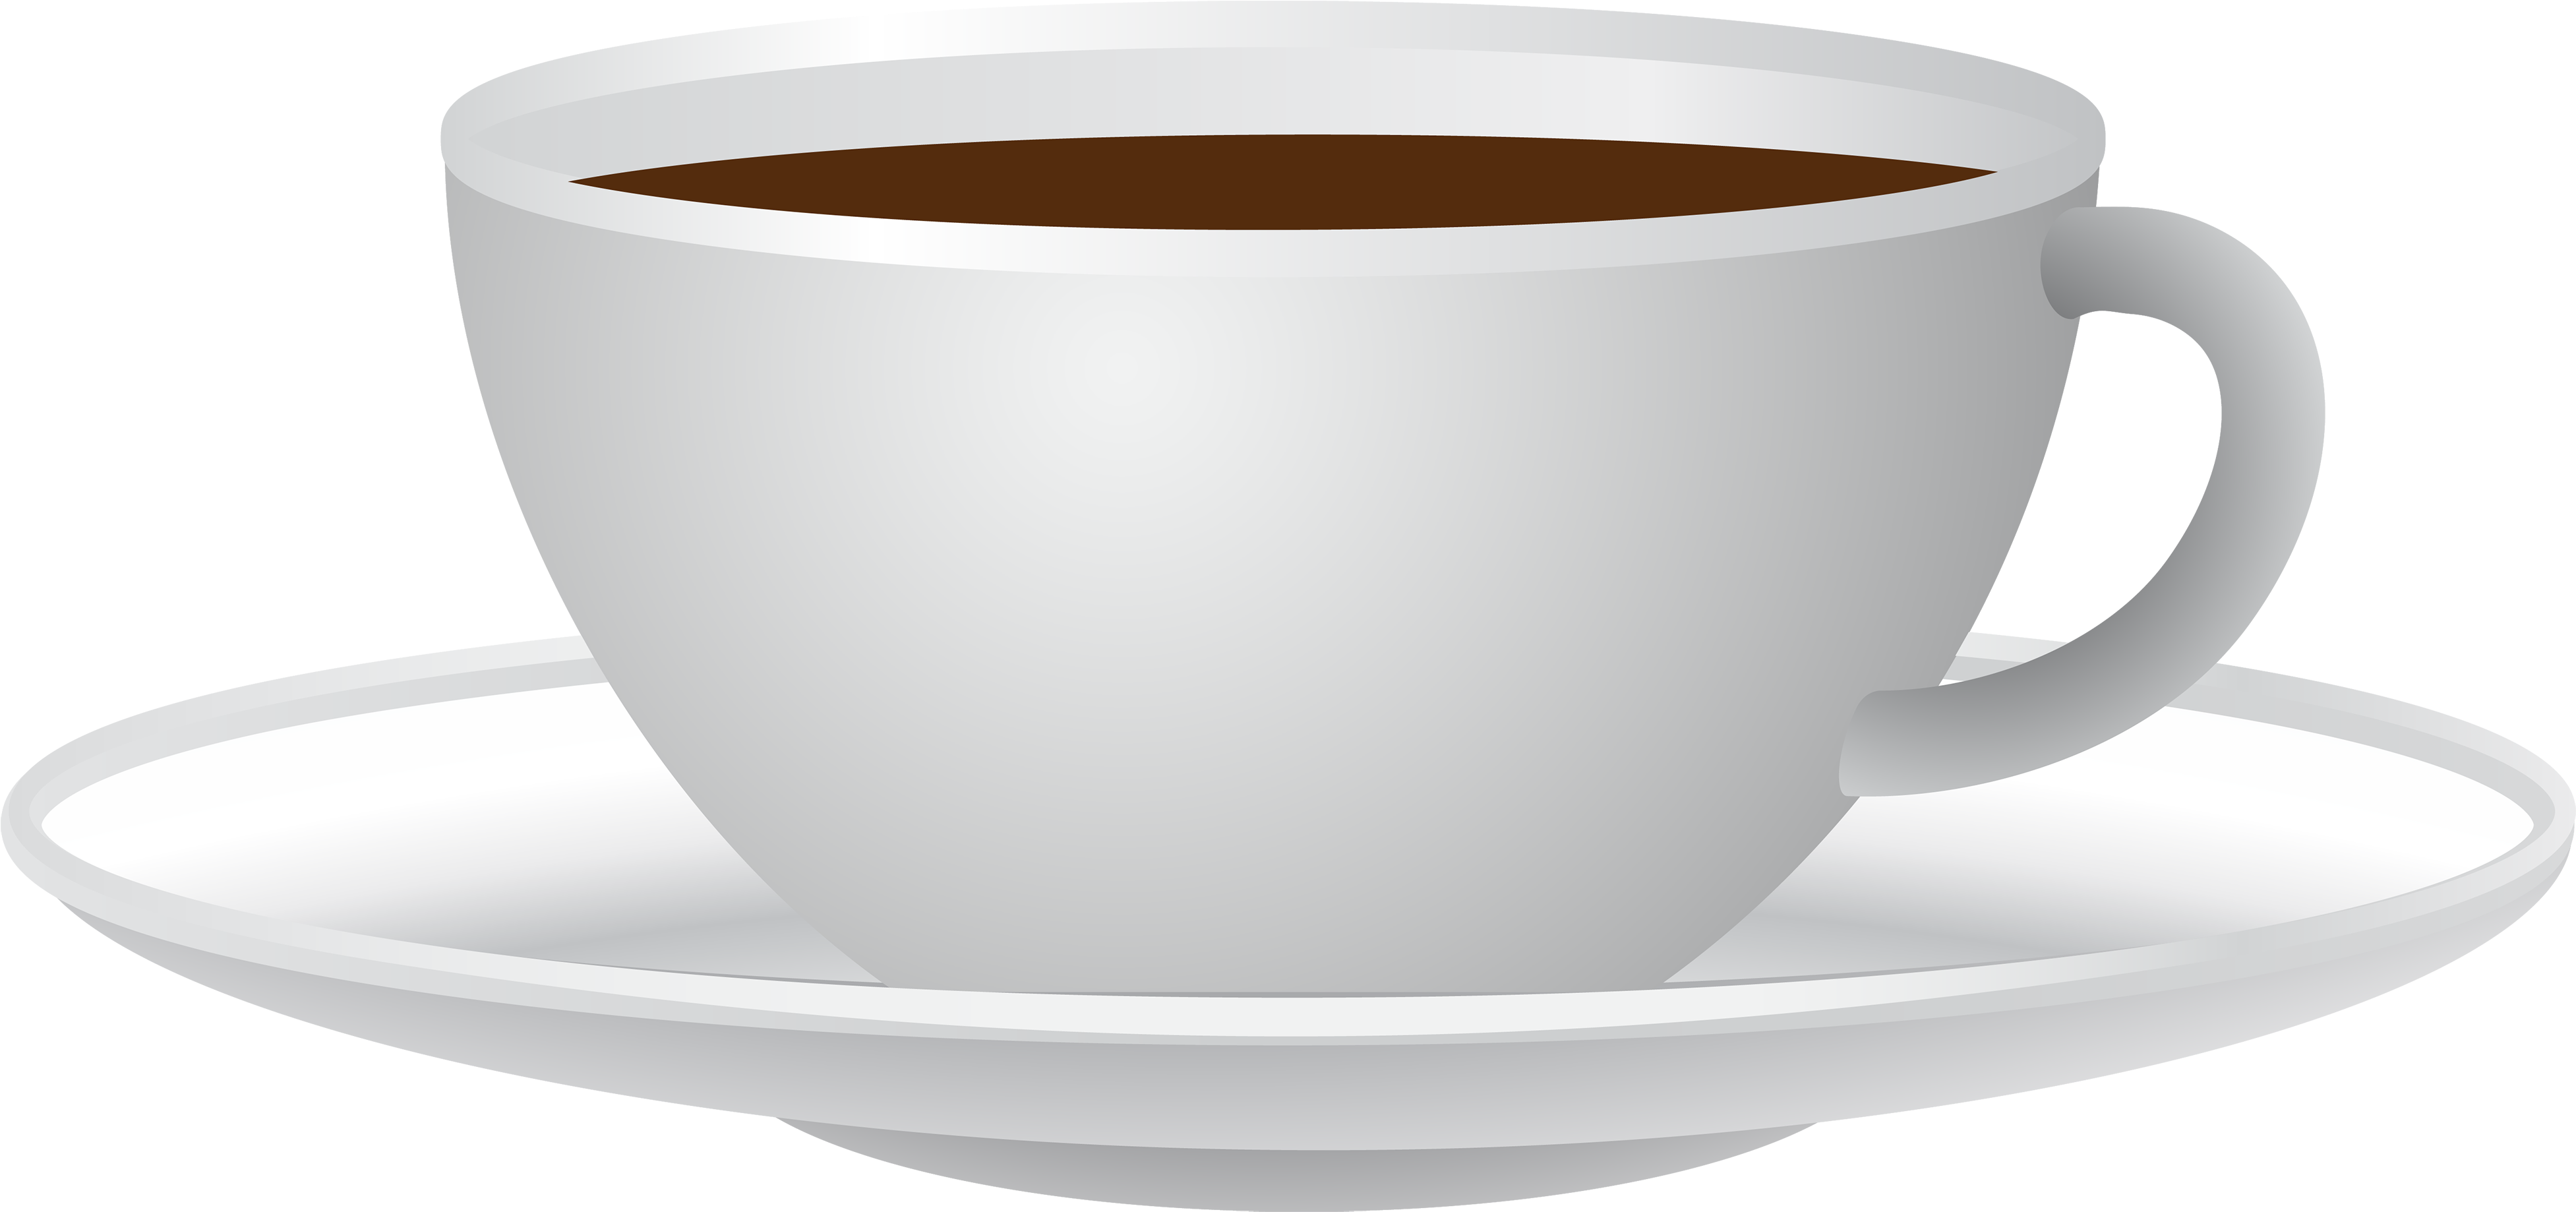 Transparent coffee cup clip art - Coffee Cup Png Clipart - Coffee Cup Clipart Png